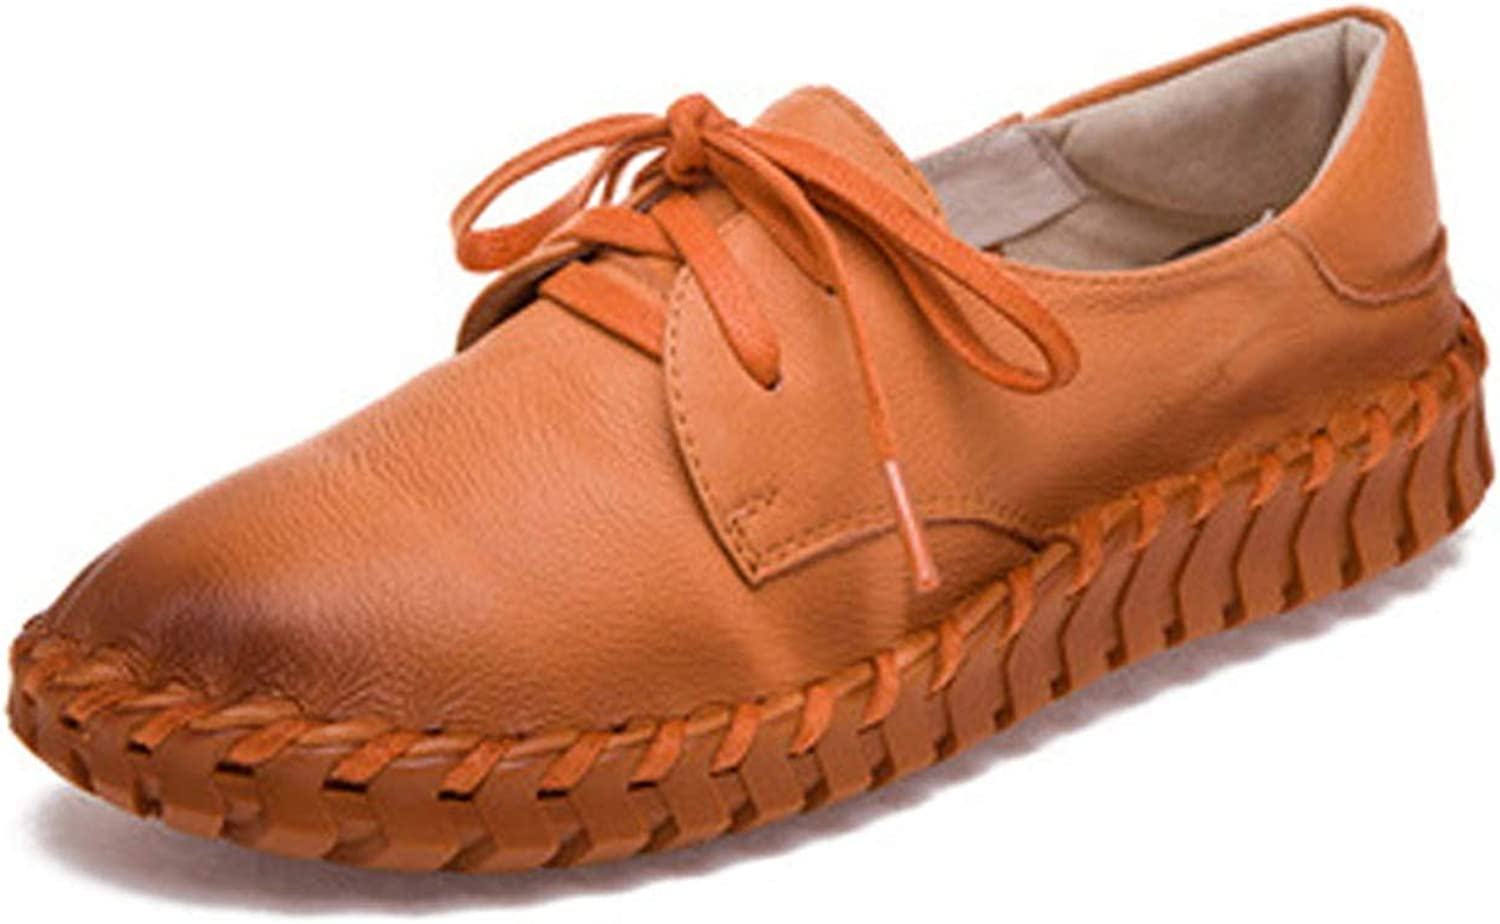 I Need-You New Women Genuine Leather Moccasins Mother Loafers Soft Leisure Flats Female Driving Casual Footwear Size 35-40 5 colors,orange,8